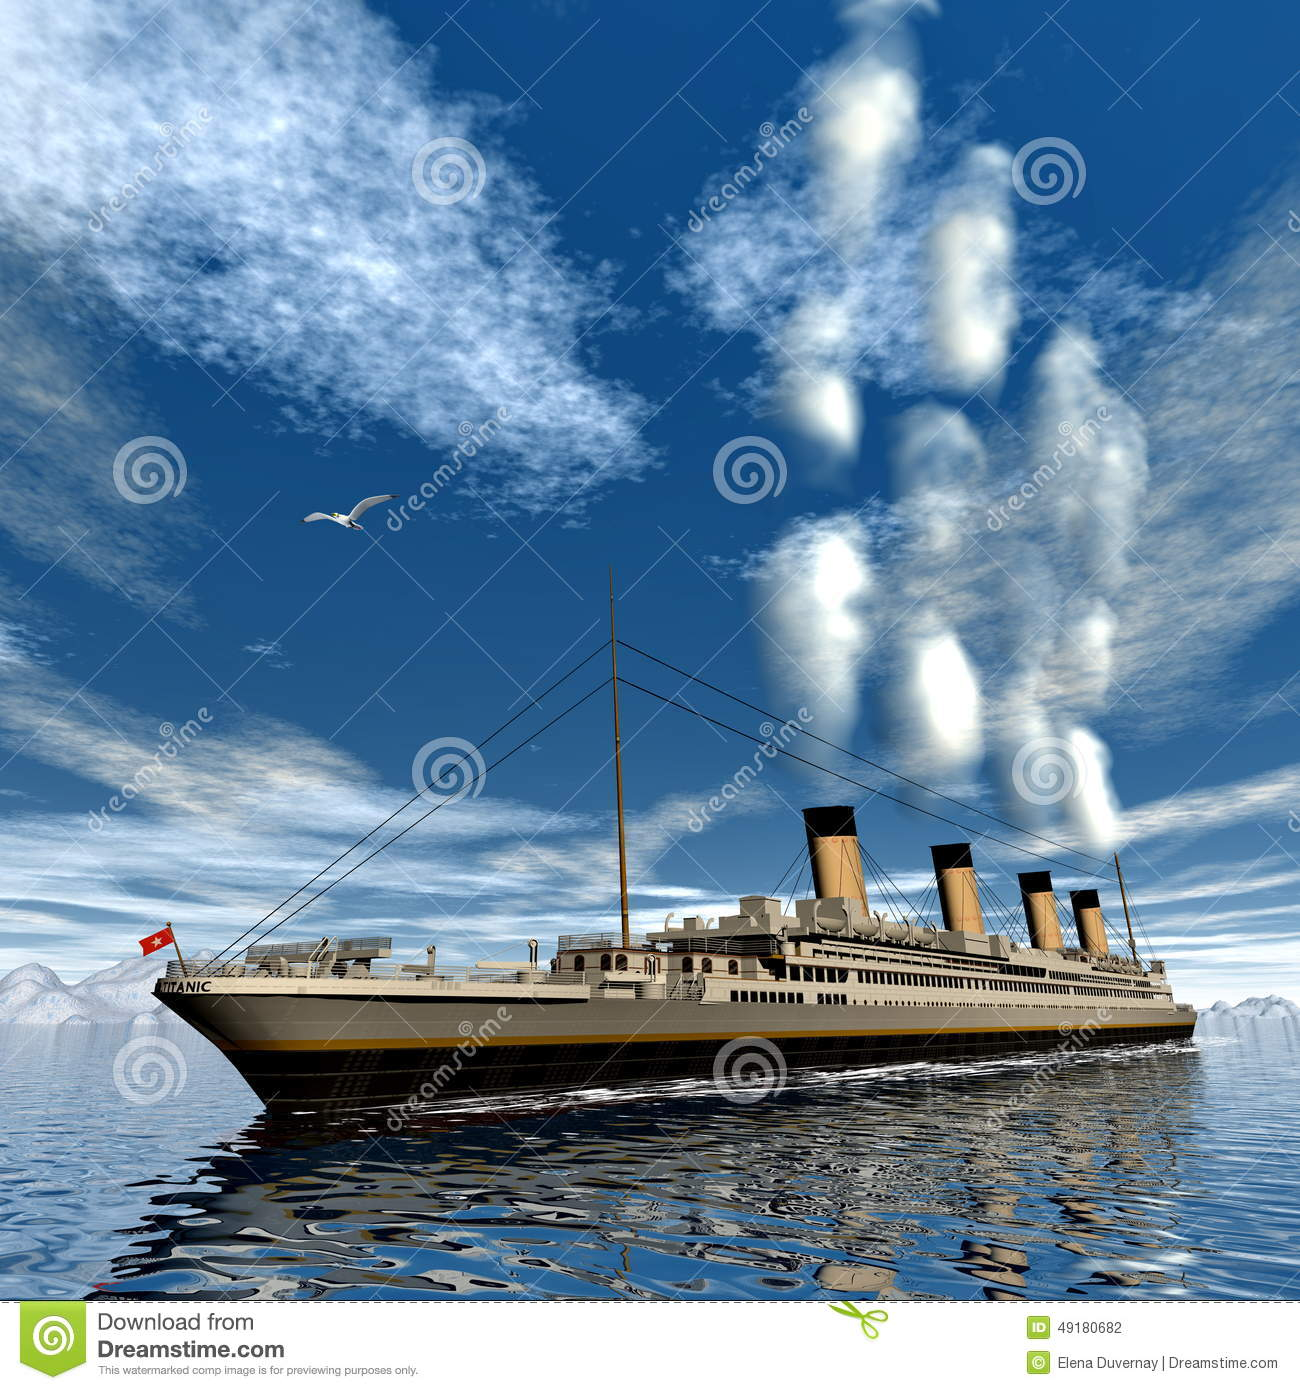 a history of the ship titanic and the cold water While the suction in the water created by the massive ship caused the new   however, historical records and manifests of the titanic show that there was  for  sinking the scorpion, and cold war tensions were high in 1985.